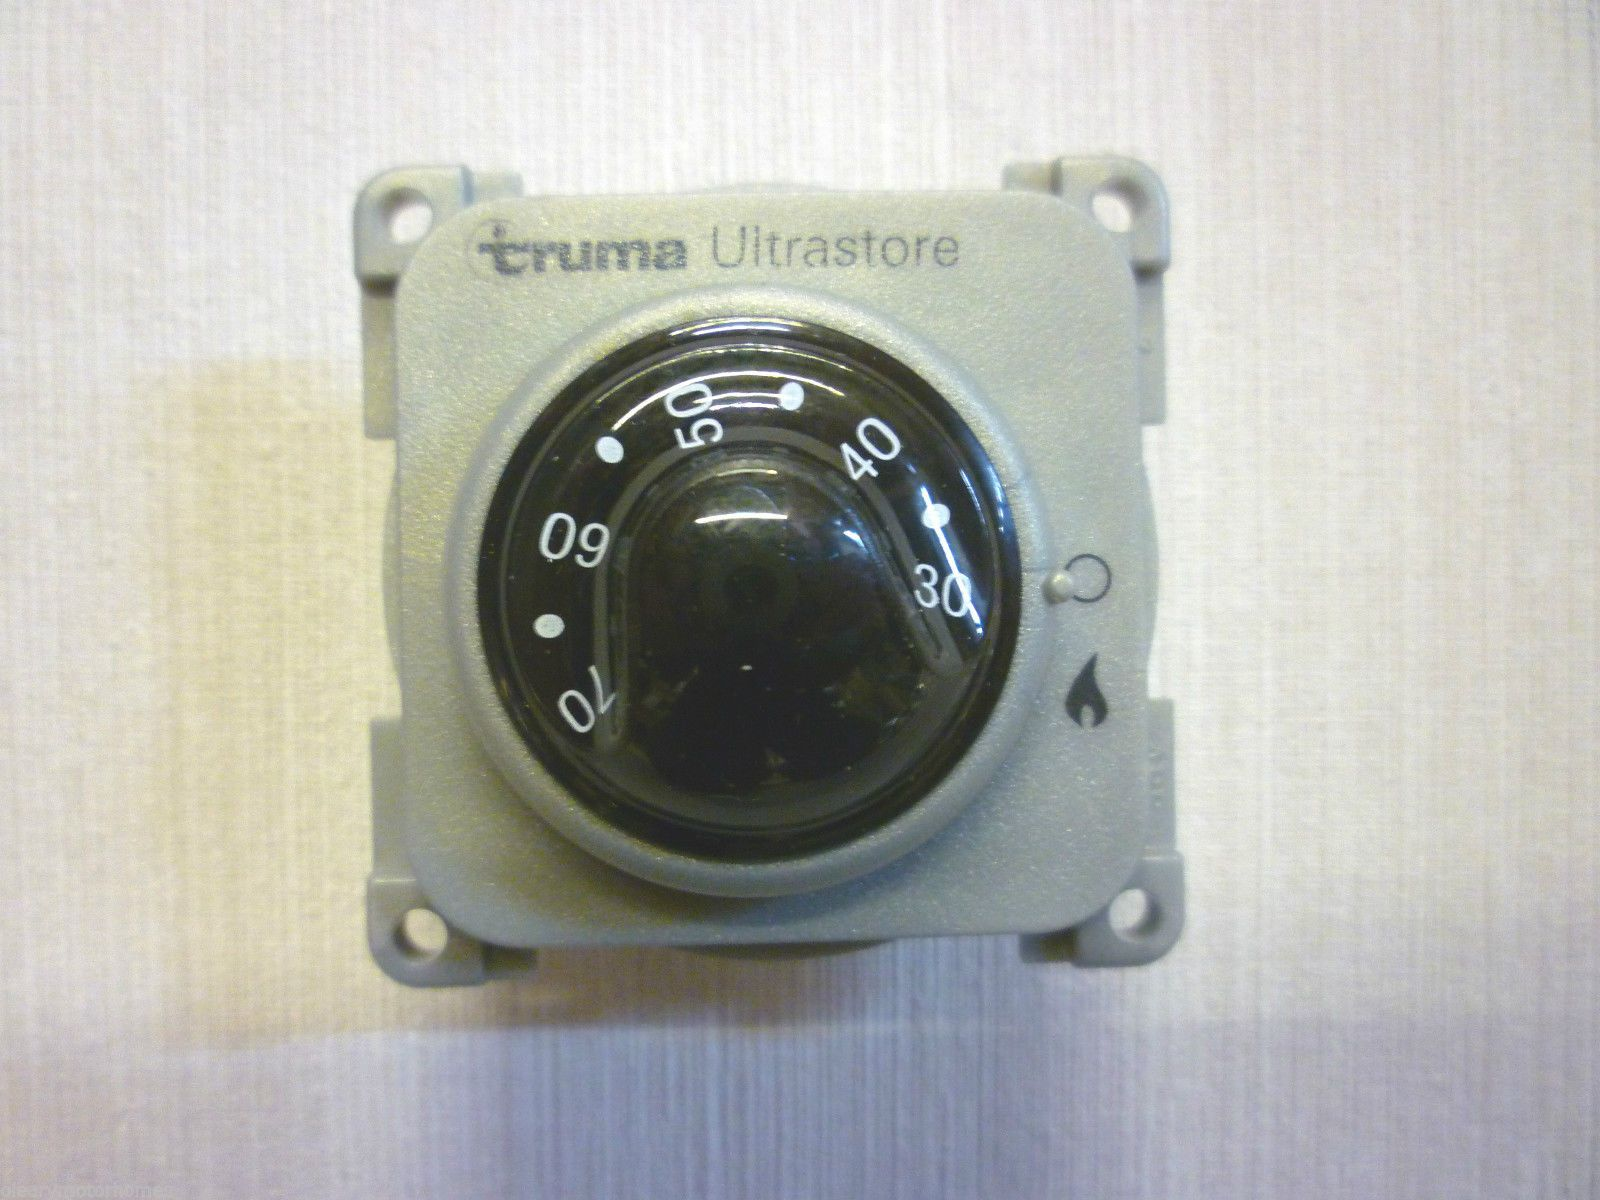 Truma Ultrastore Replacement Dial Control Switch